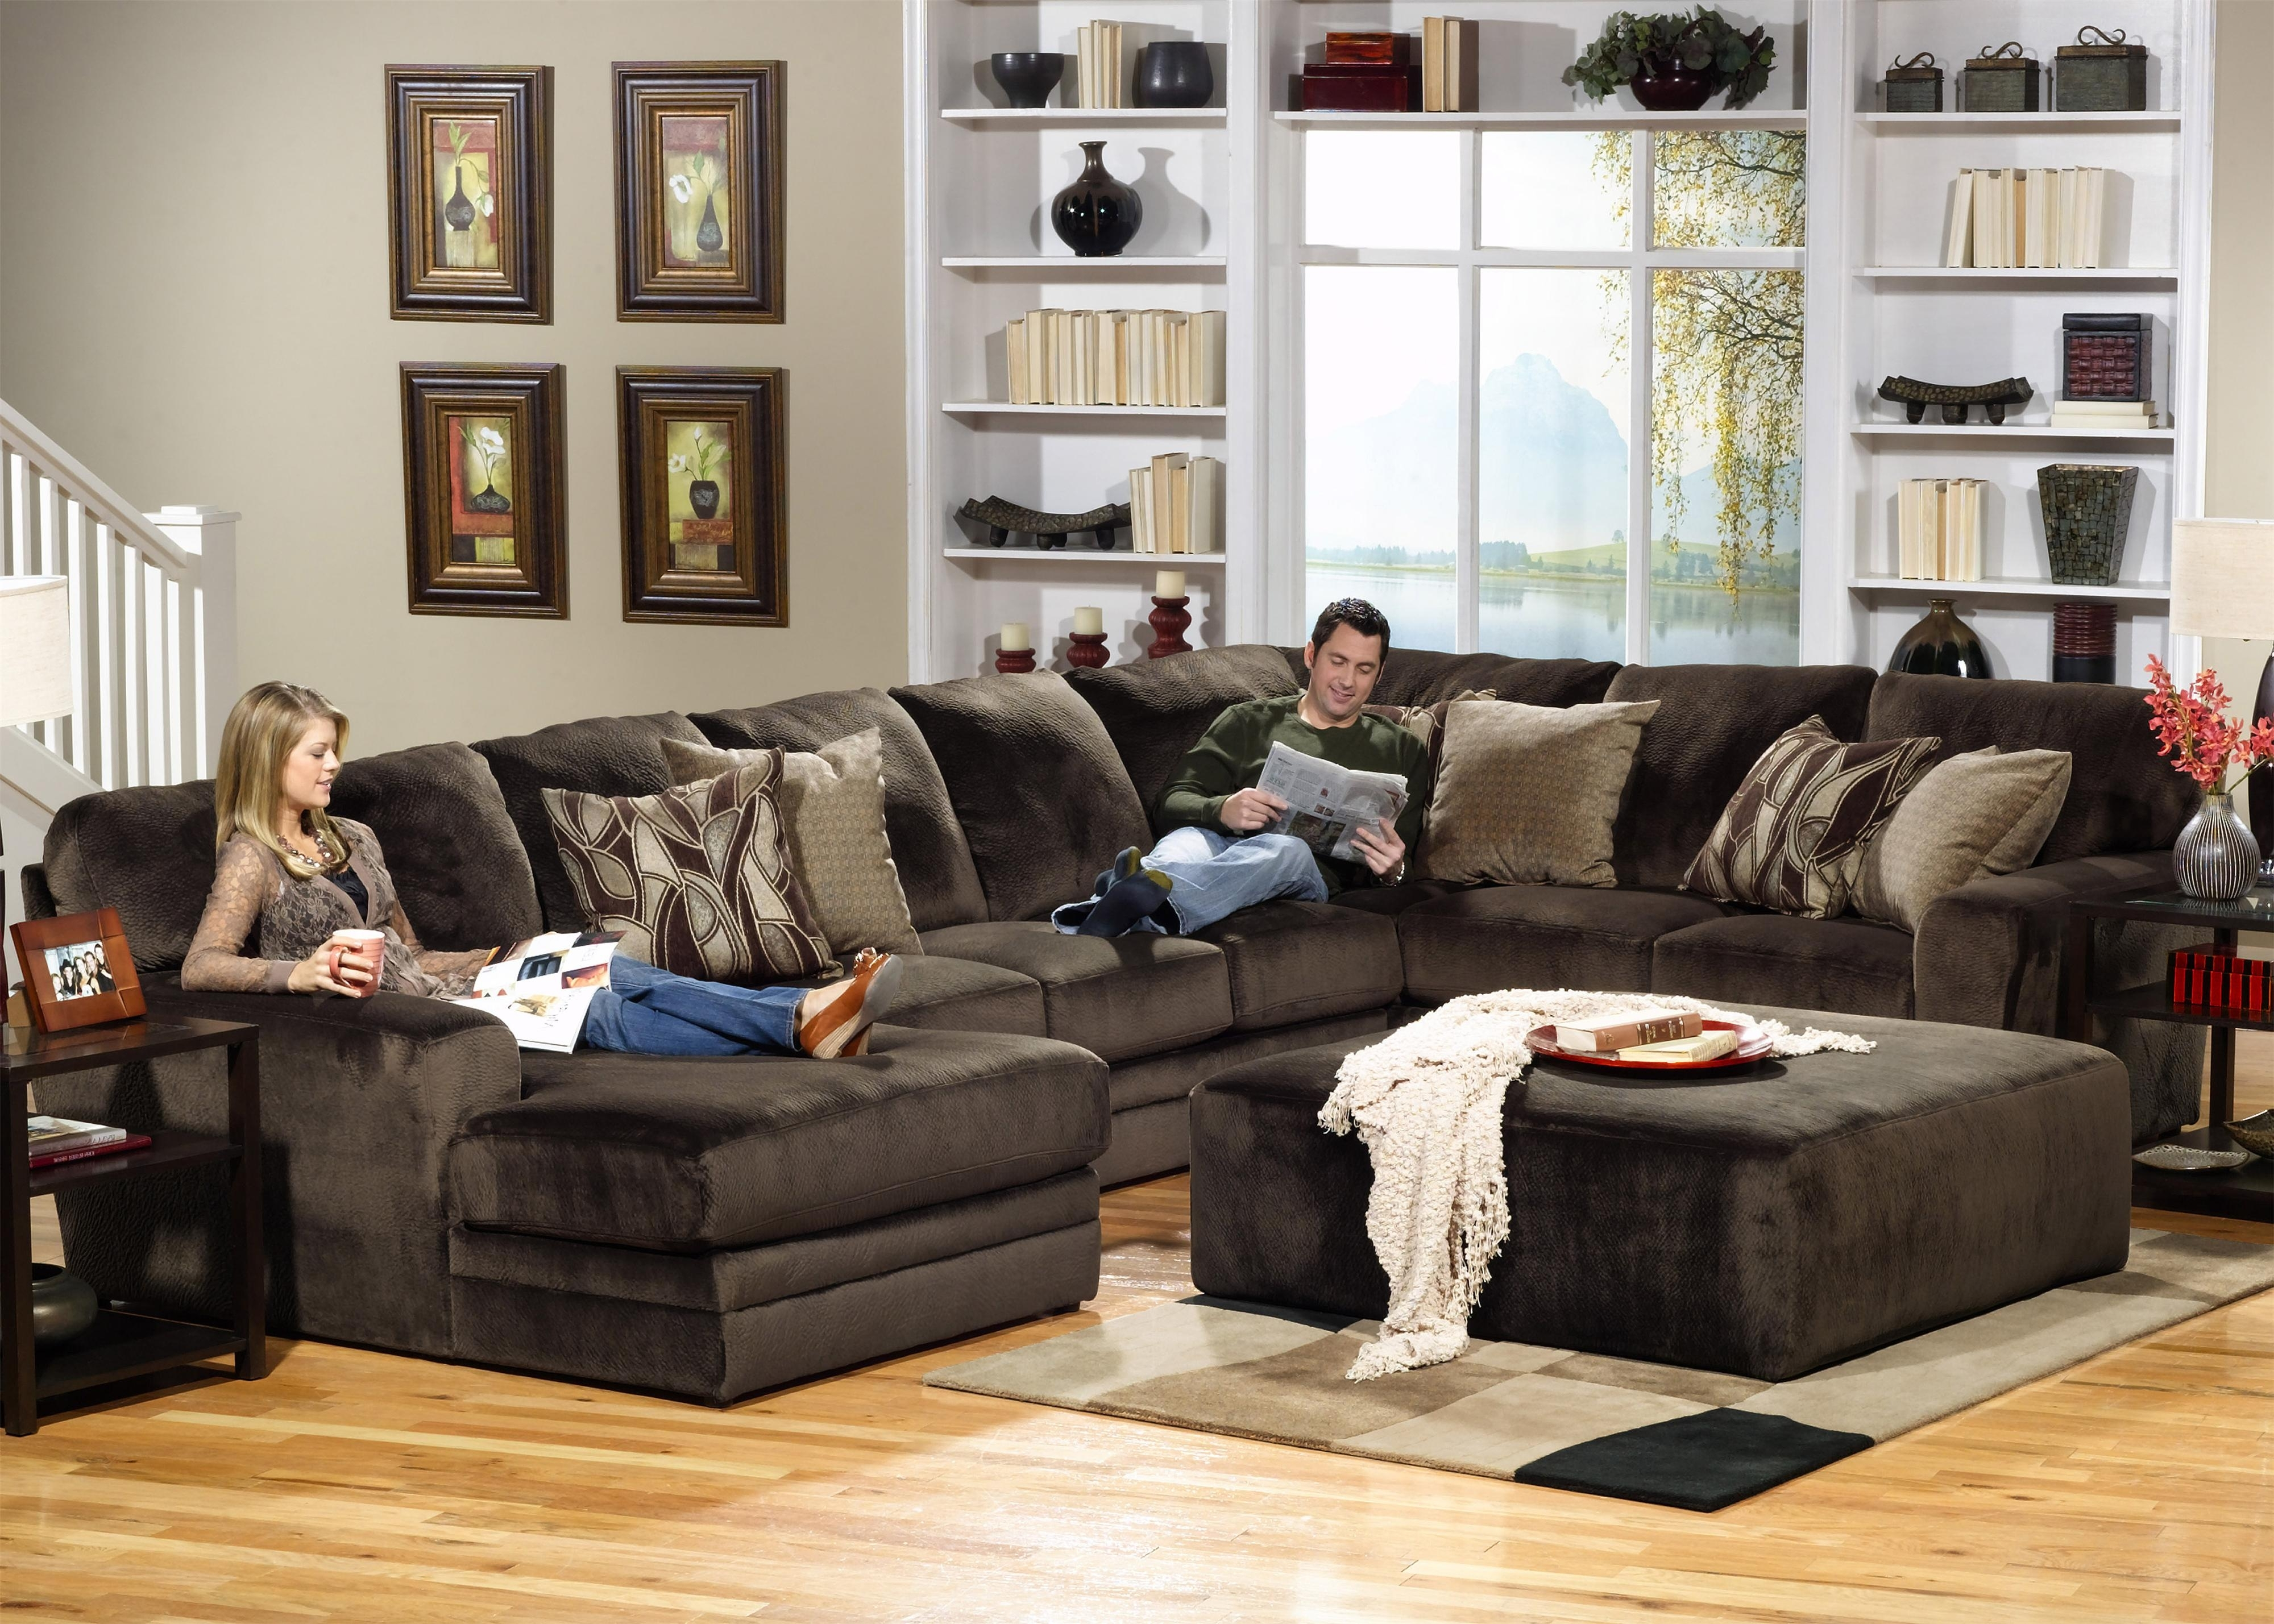 3 Piece Sectional With Rsf Sectionjackson Furniture | Wolf And With Regard To Jackson 6 Piece Power Reclining Sectionals (Photo 12 of 30)